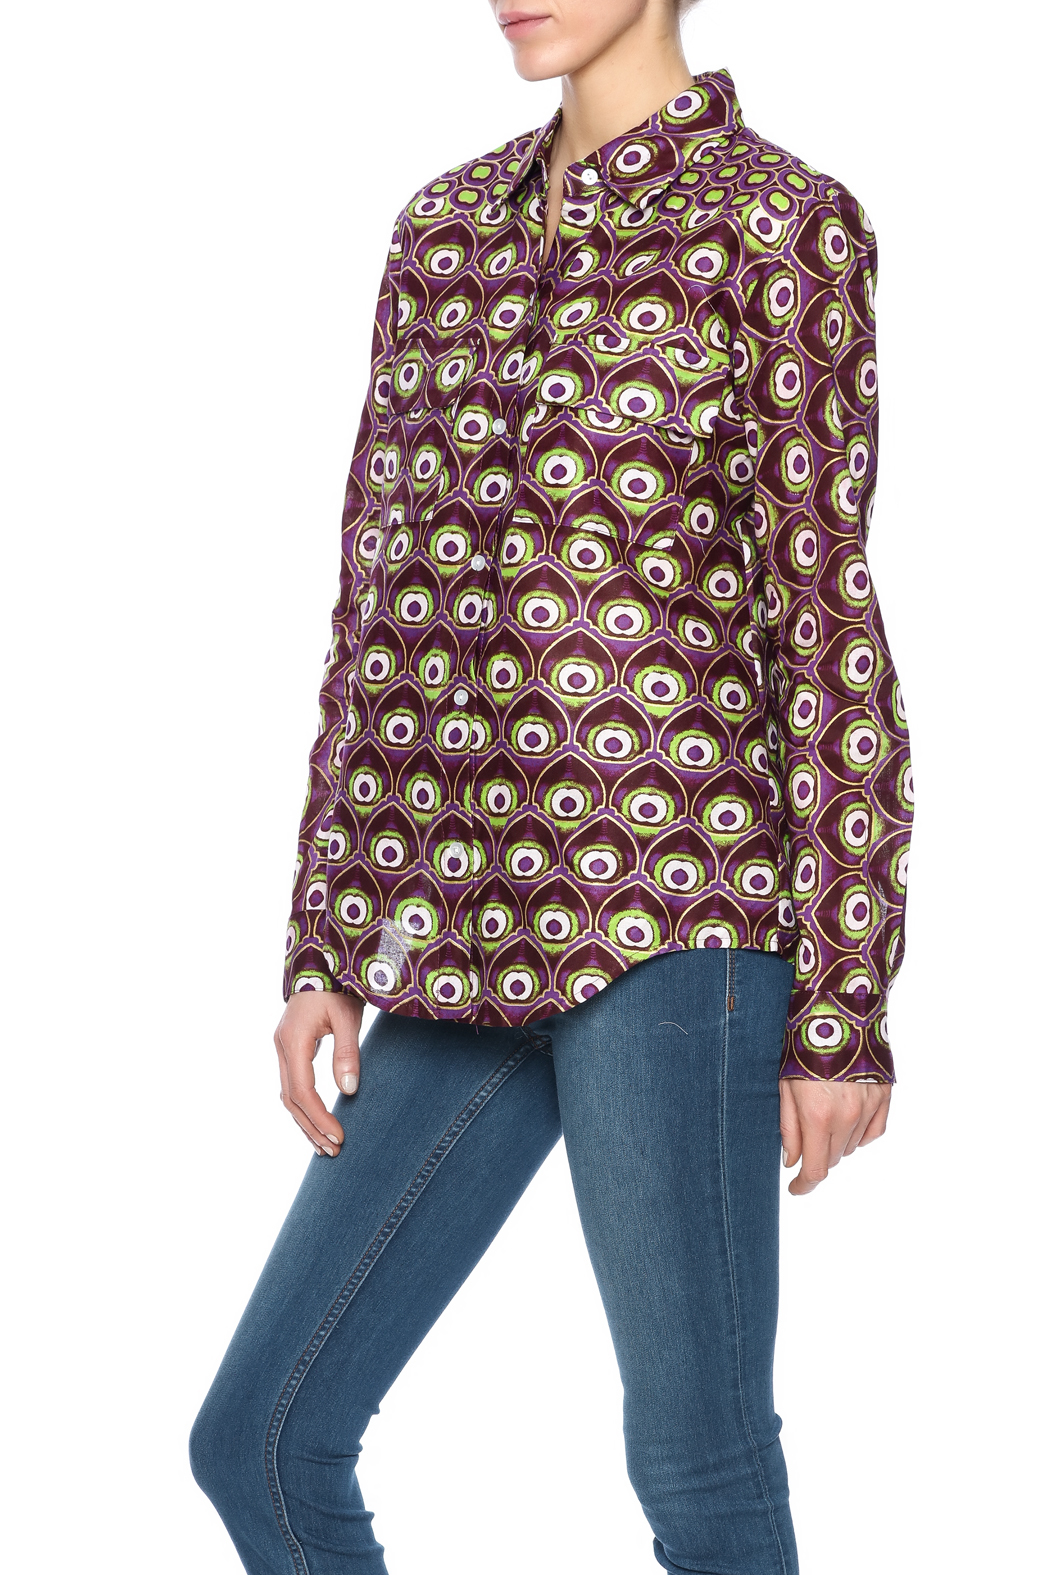 Hilary MacMillan Peacock Button Up - Main Image